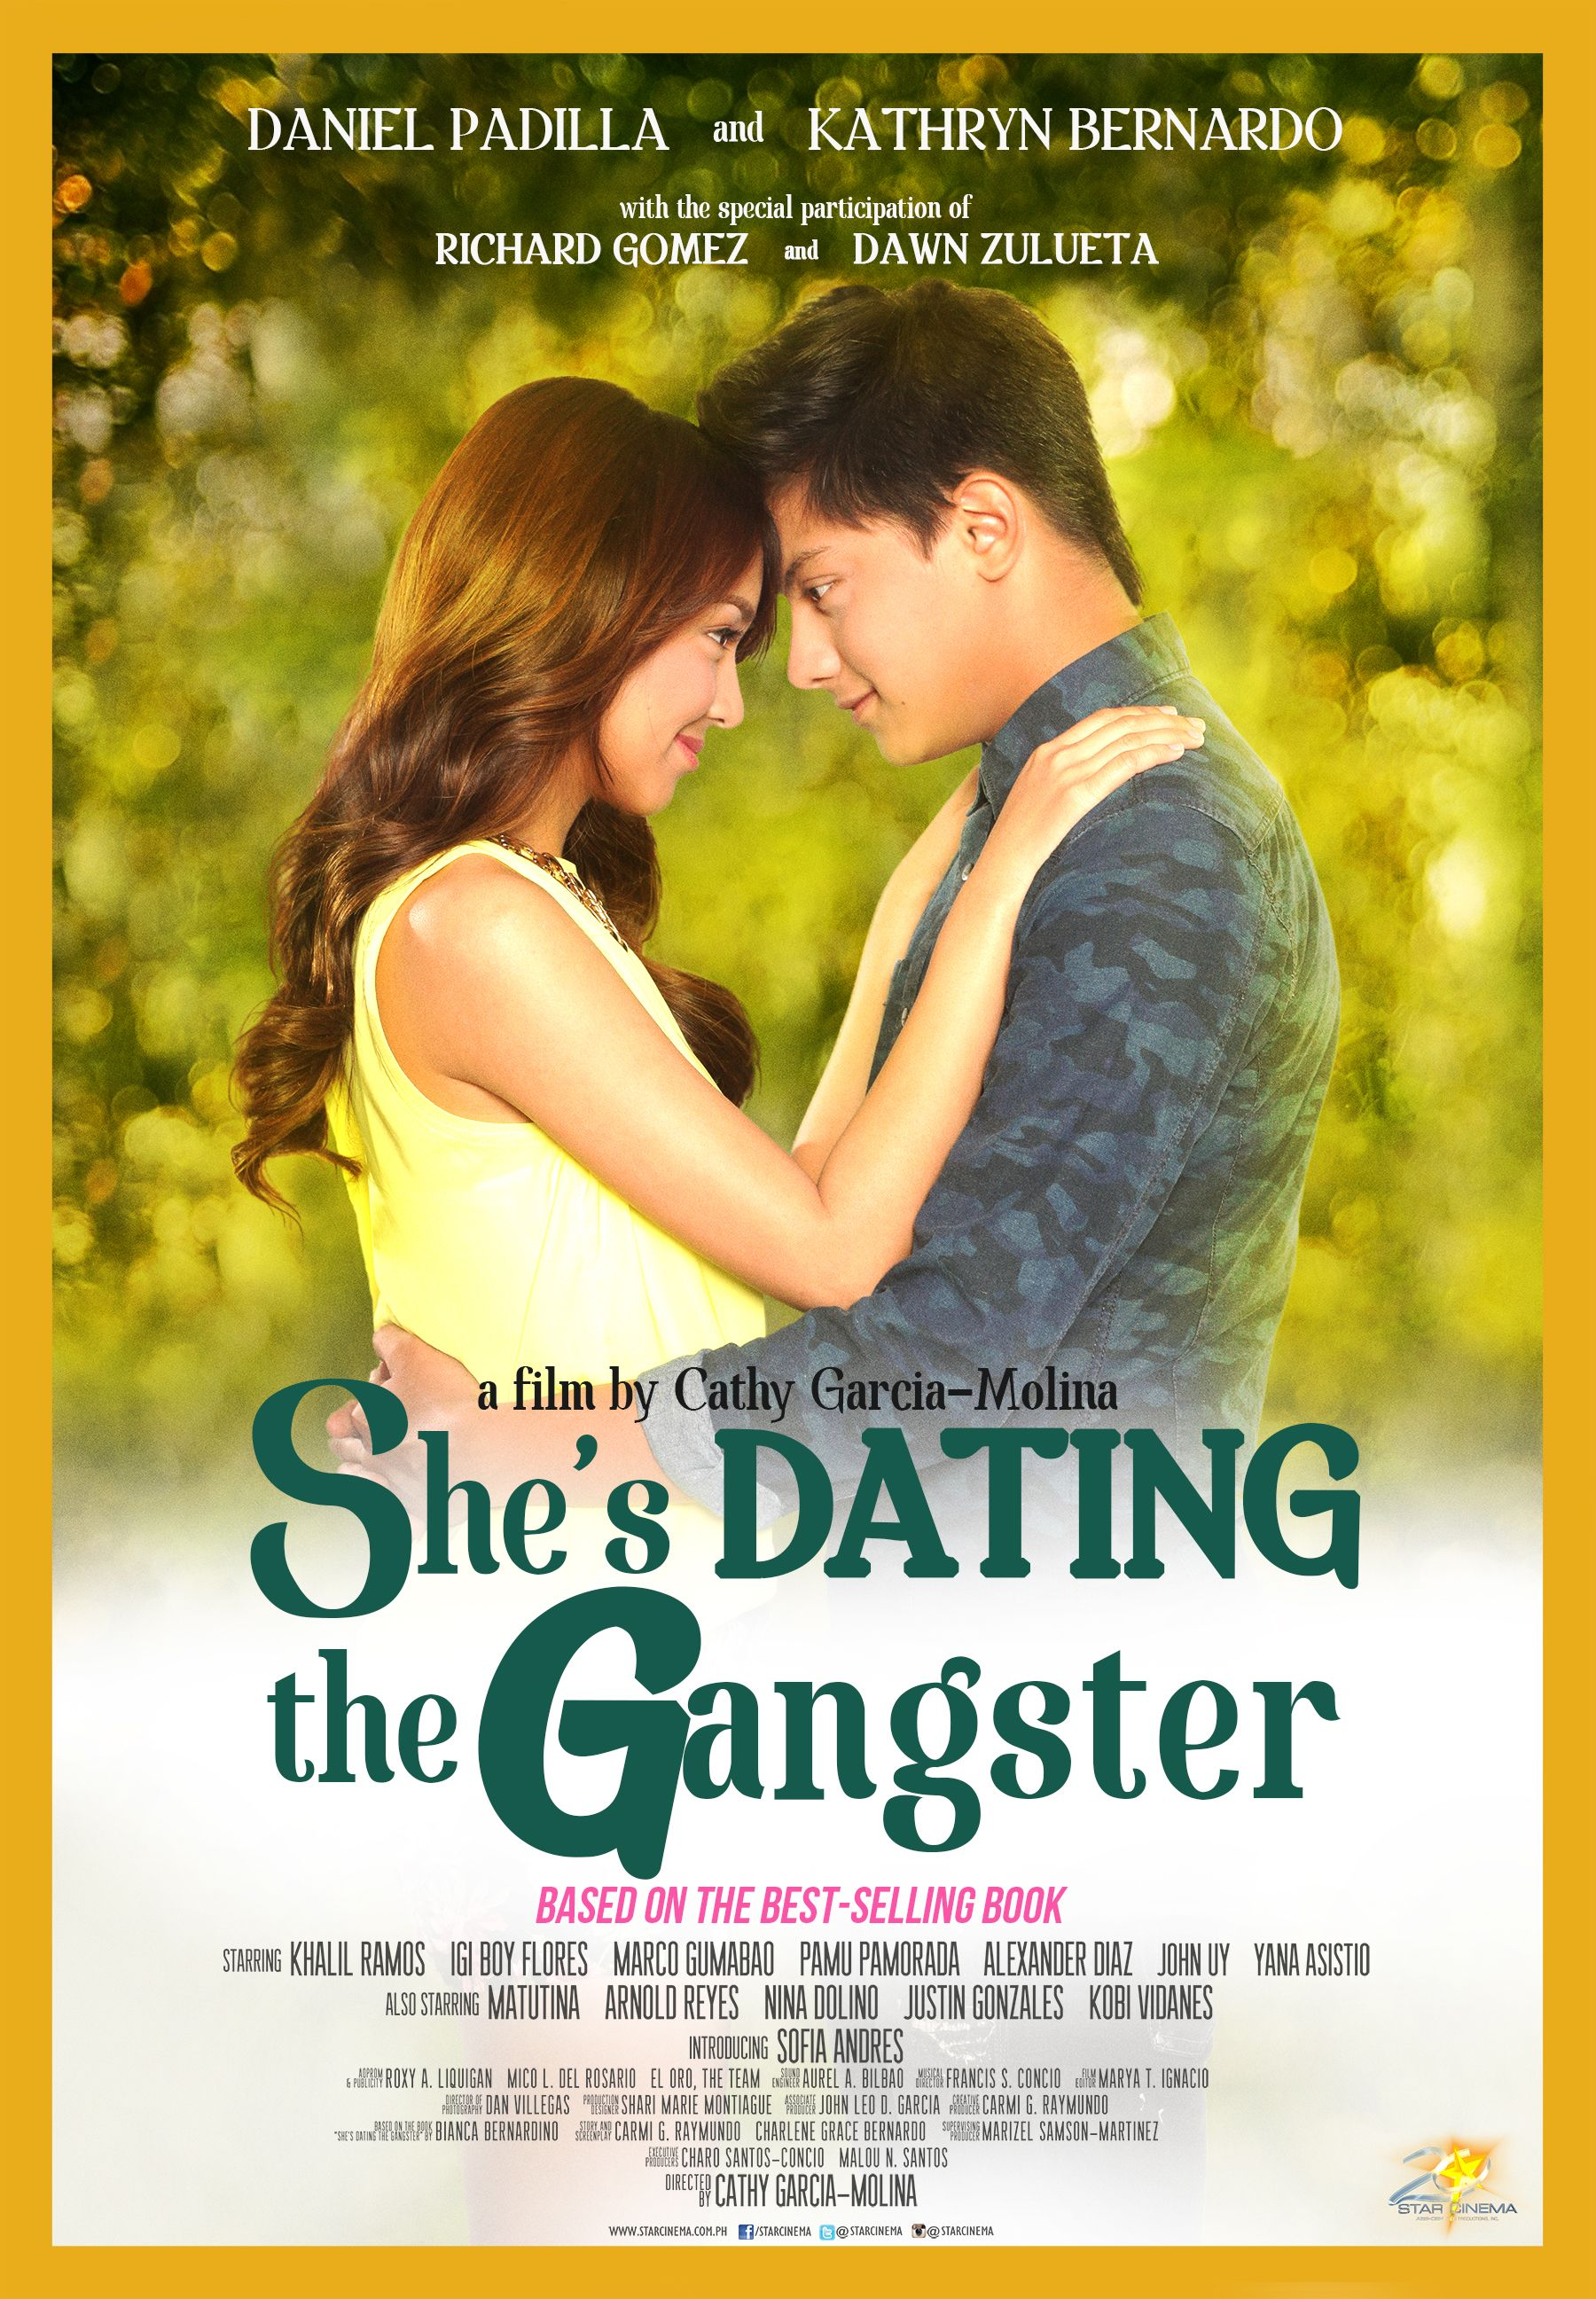 She S Dating The Gangster 2014 Starring Daniel Padilla Kathryn Bernardo Pinoy Movies Gangster Movies Gangster